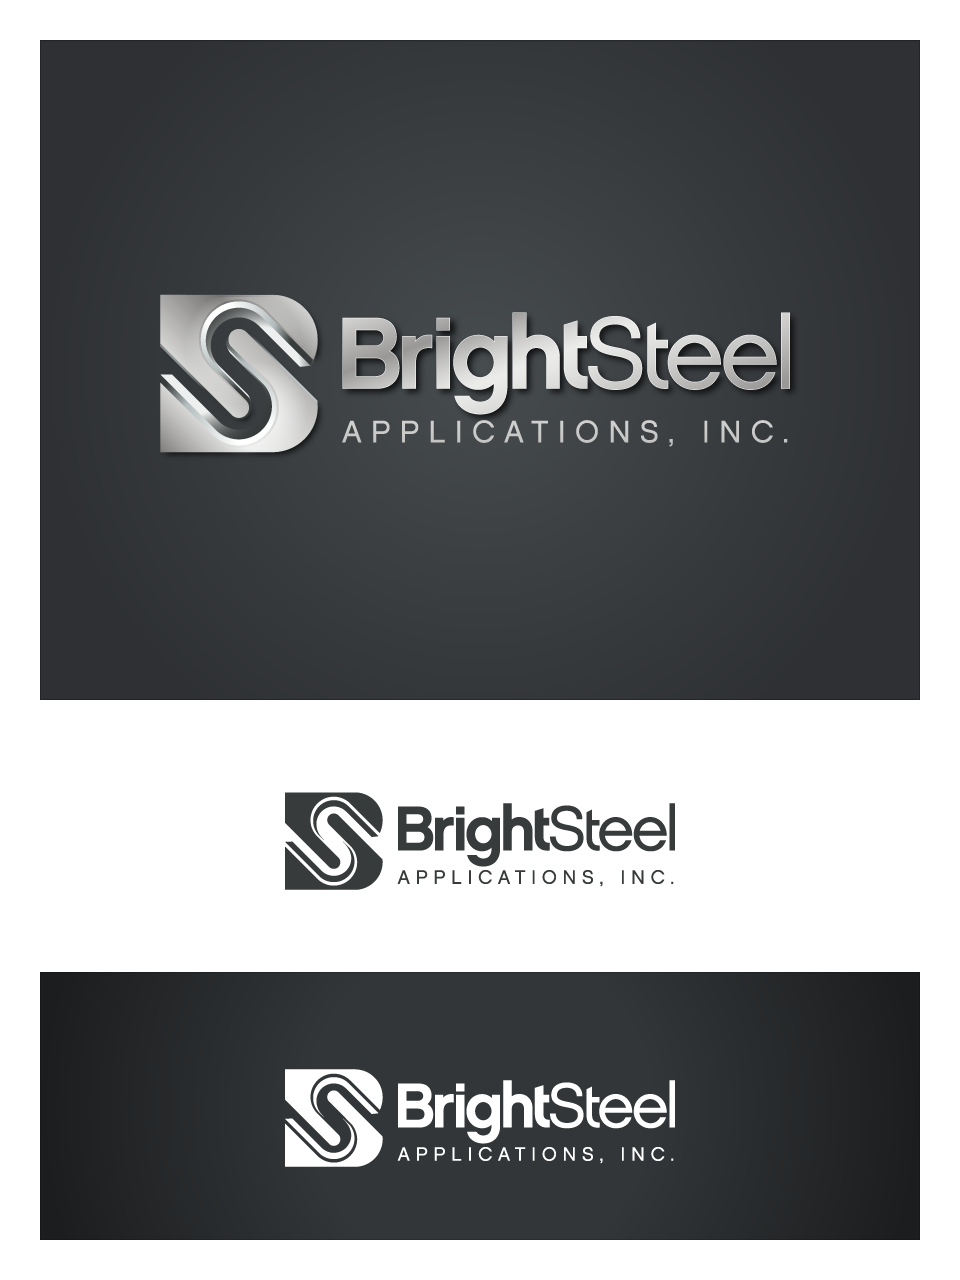 Create the next logo for BrightSteel Applications, Inc.